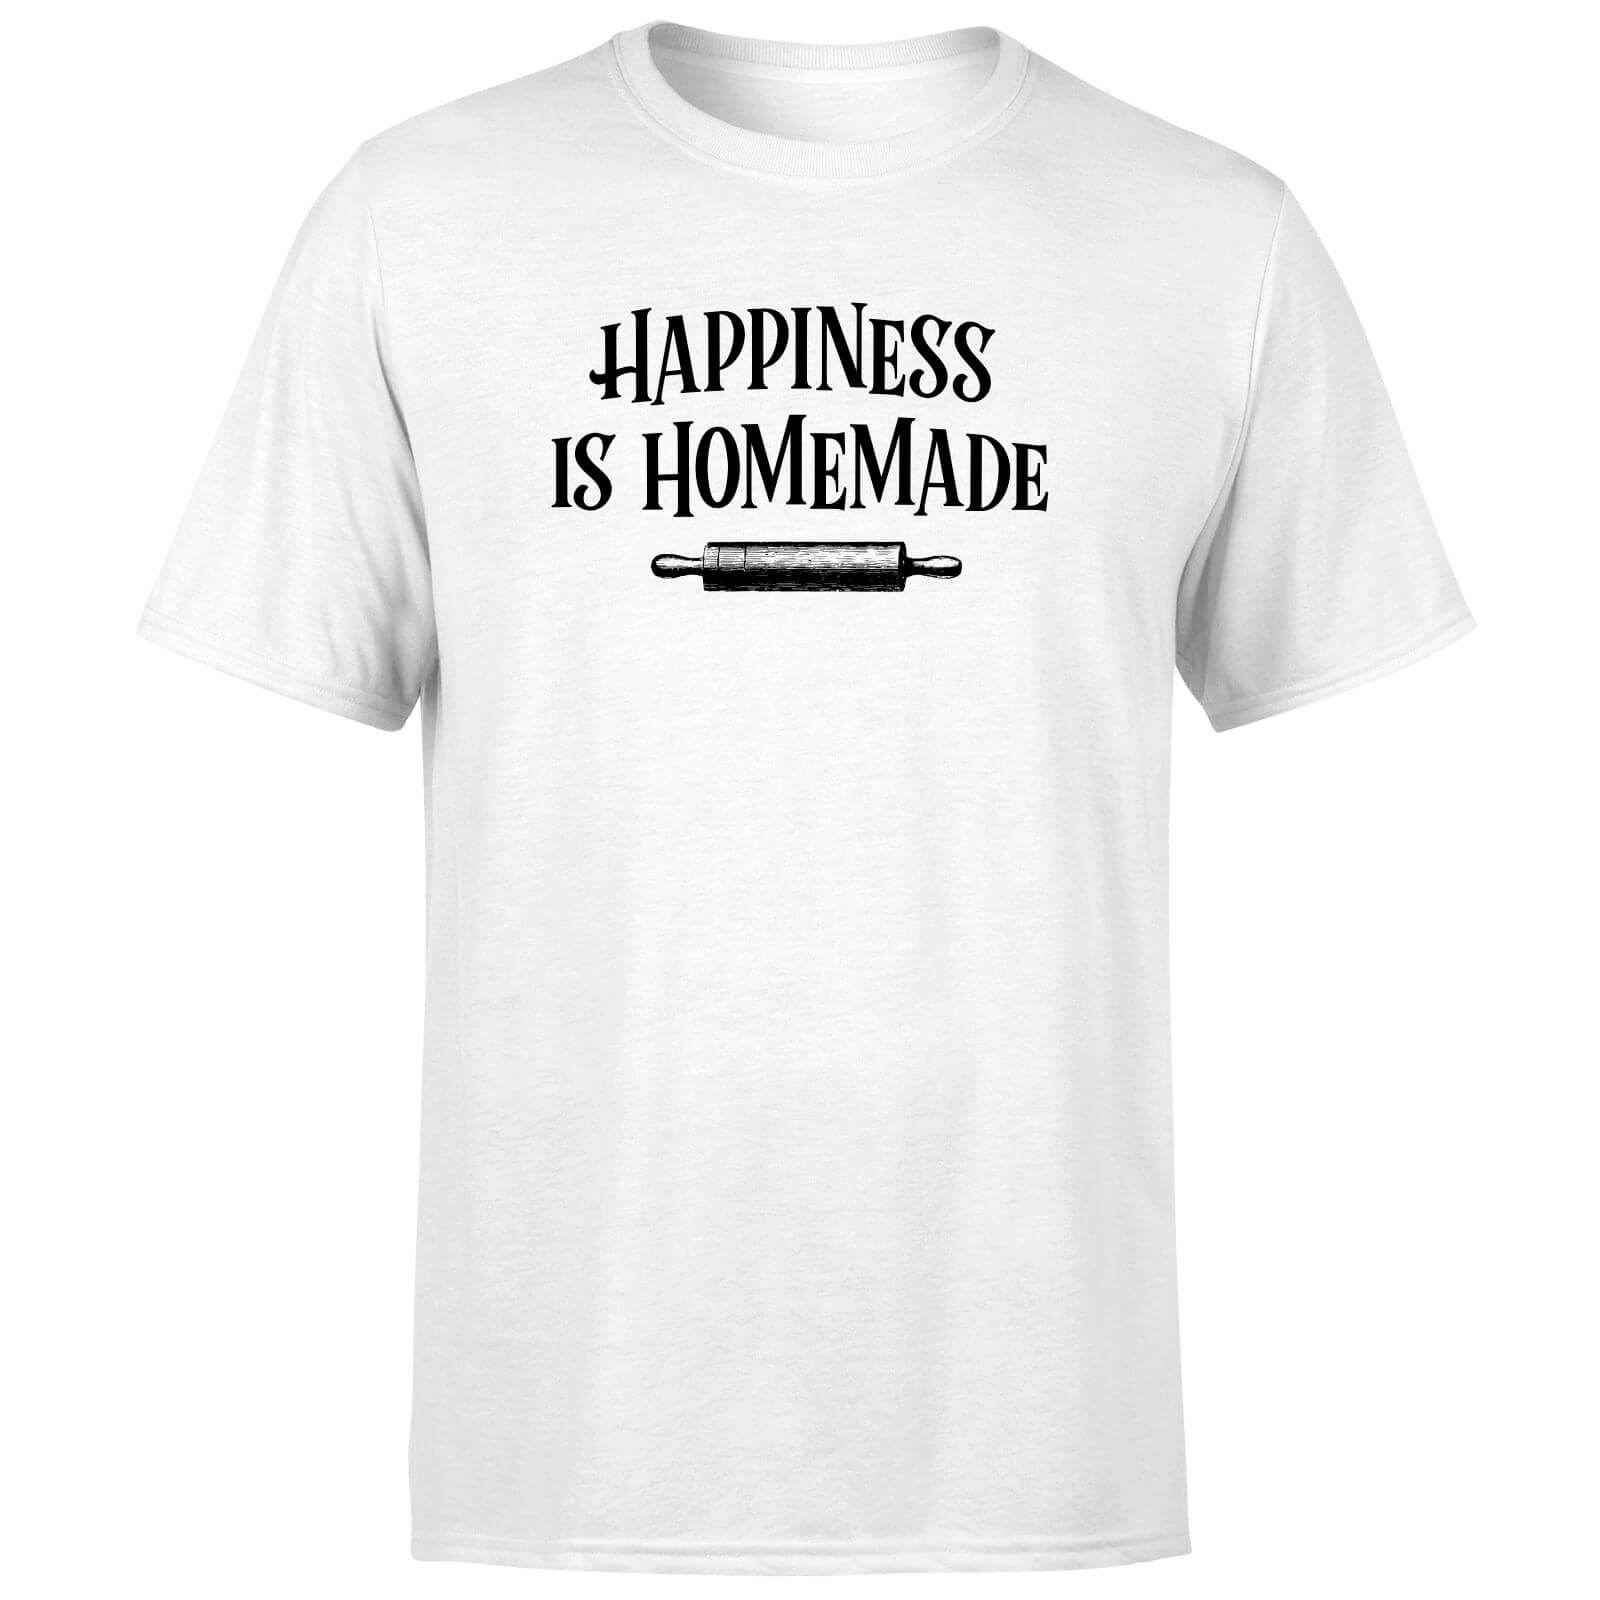 Happiness Is Homemade T-Shirt - White